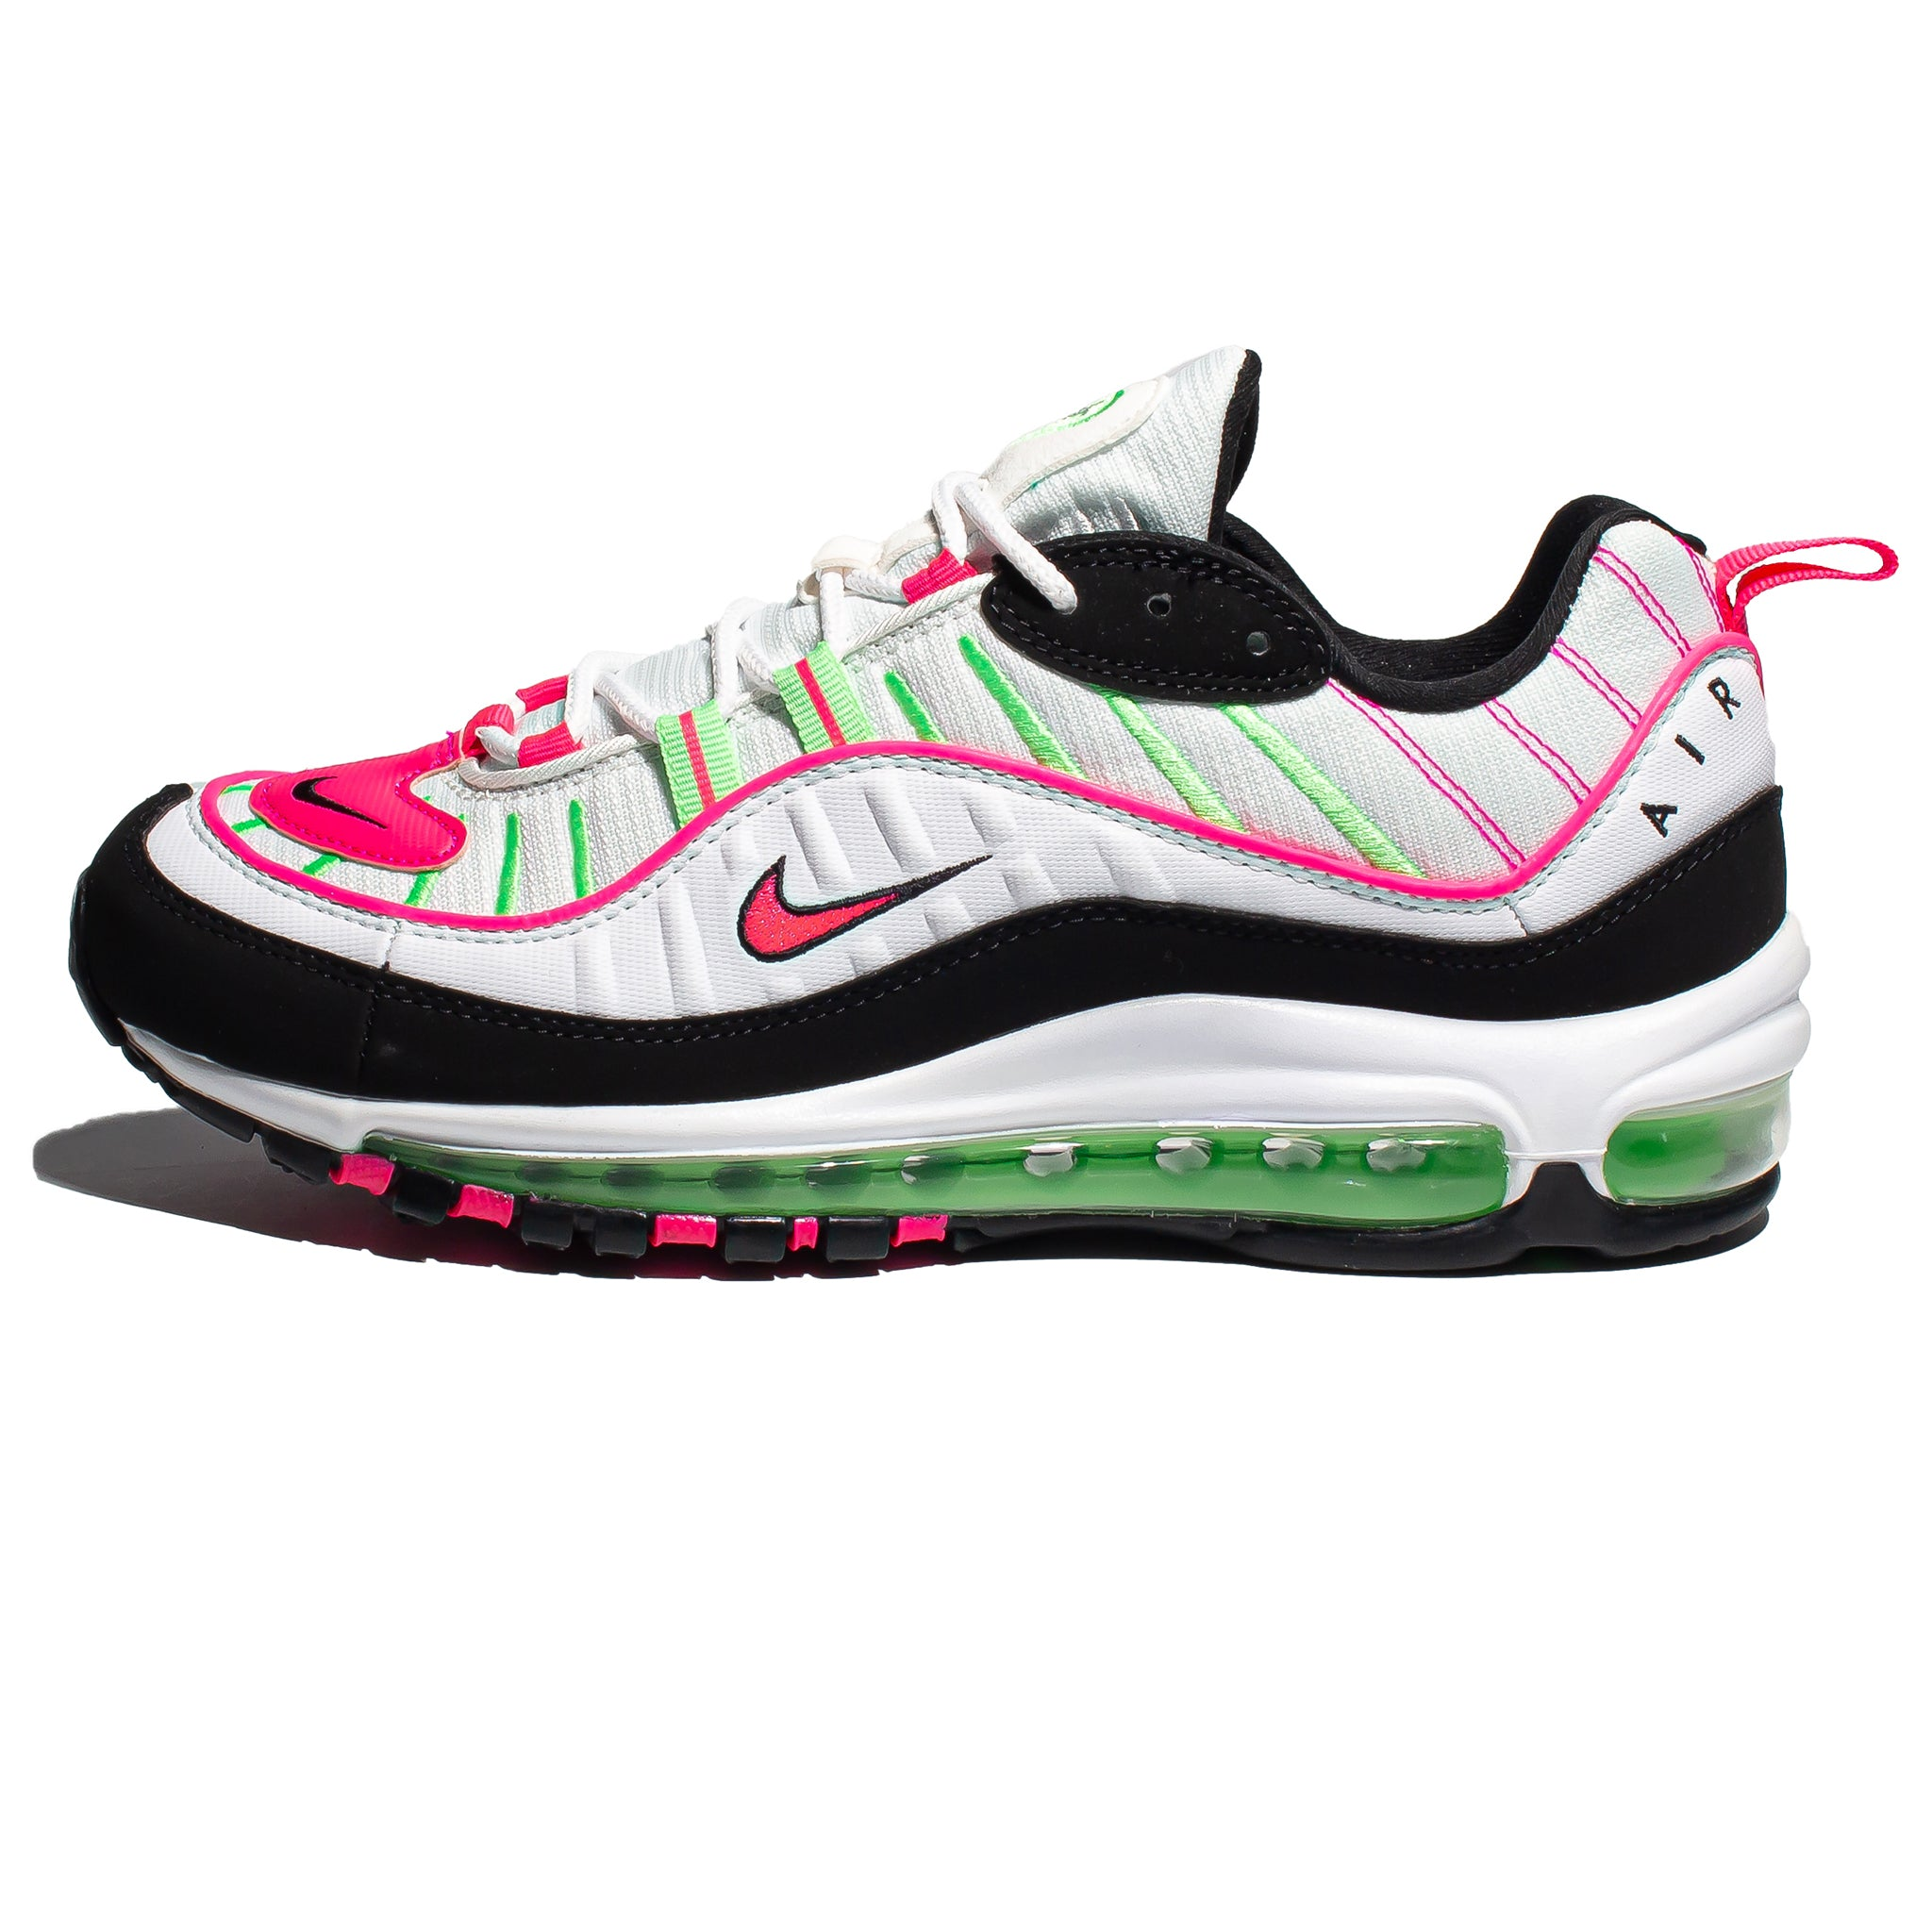 Nike Air Max 98 'Watermelon'